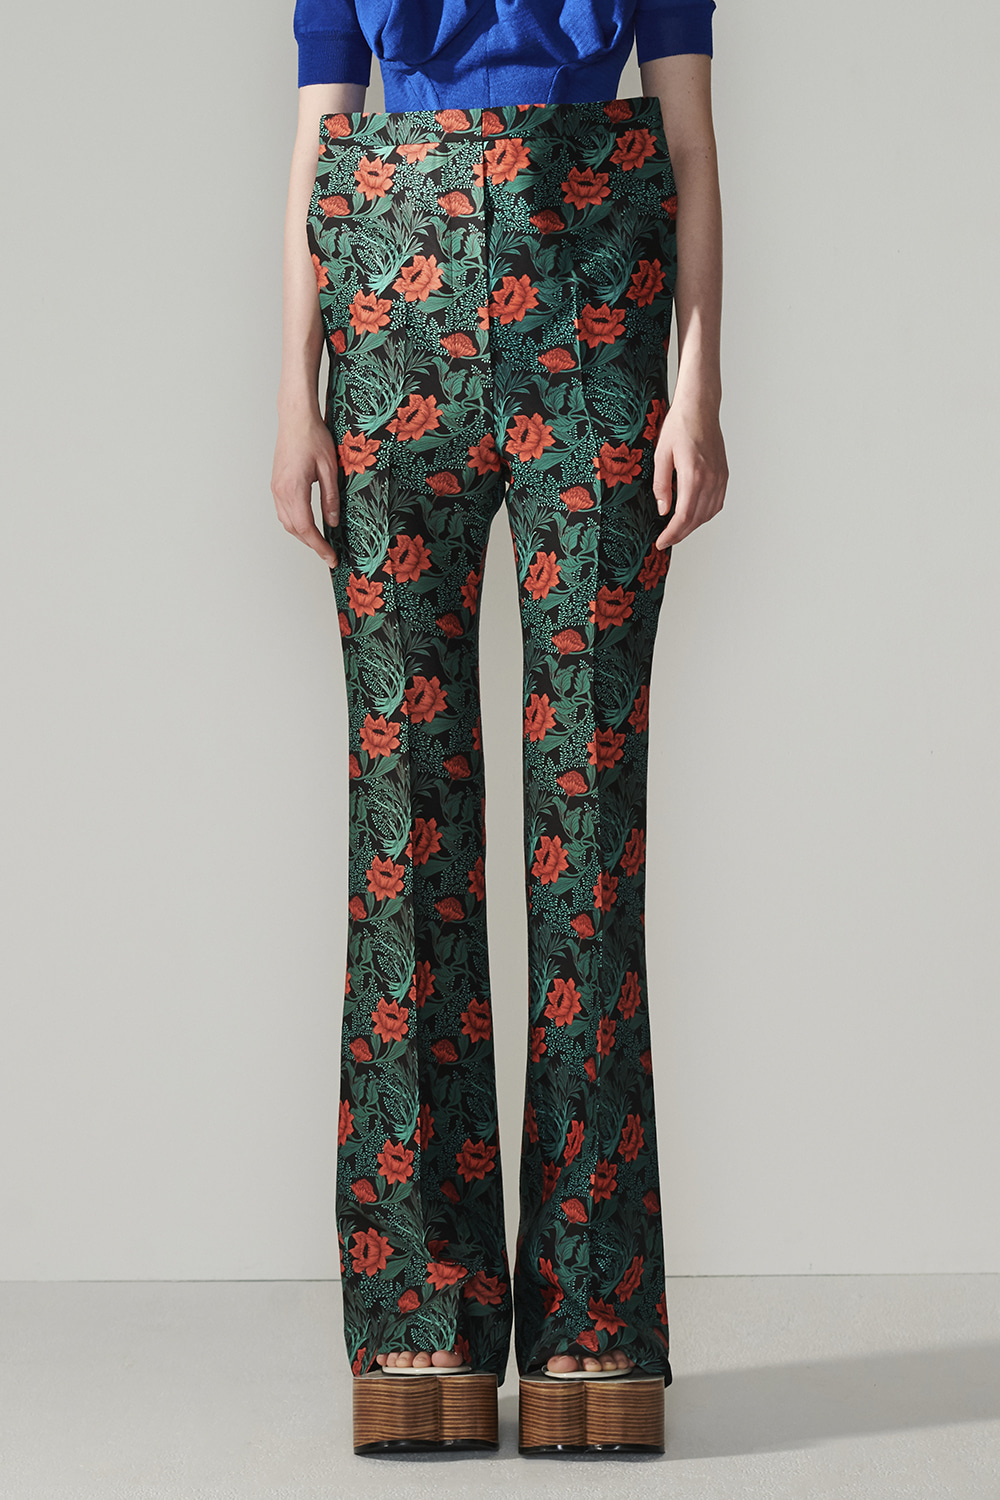 SS21 FRONT-UP BELL BOTTON FLORAL PANTS